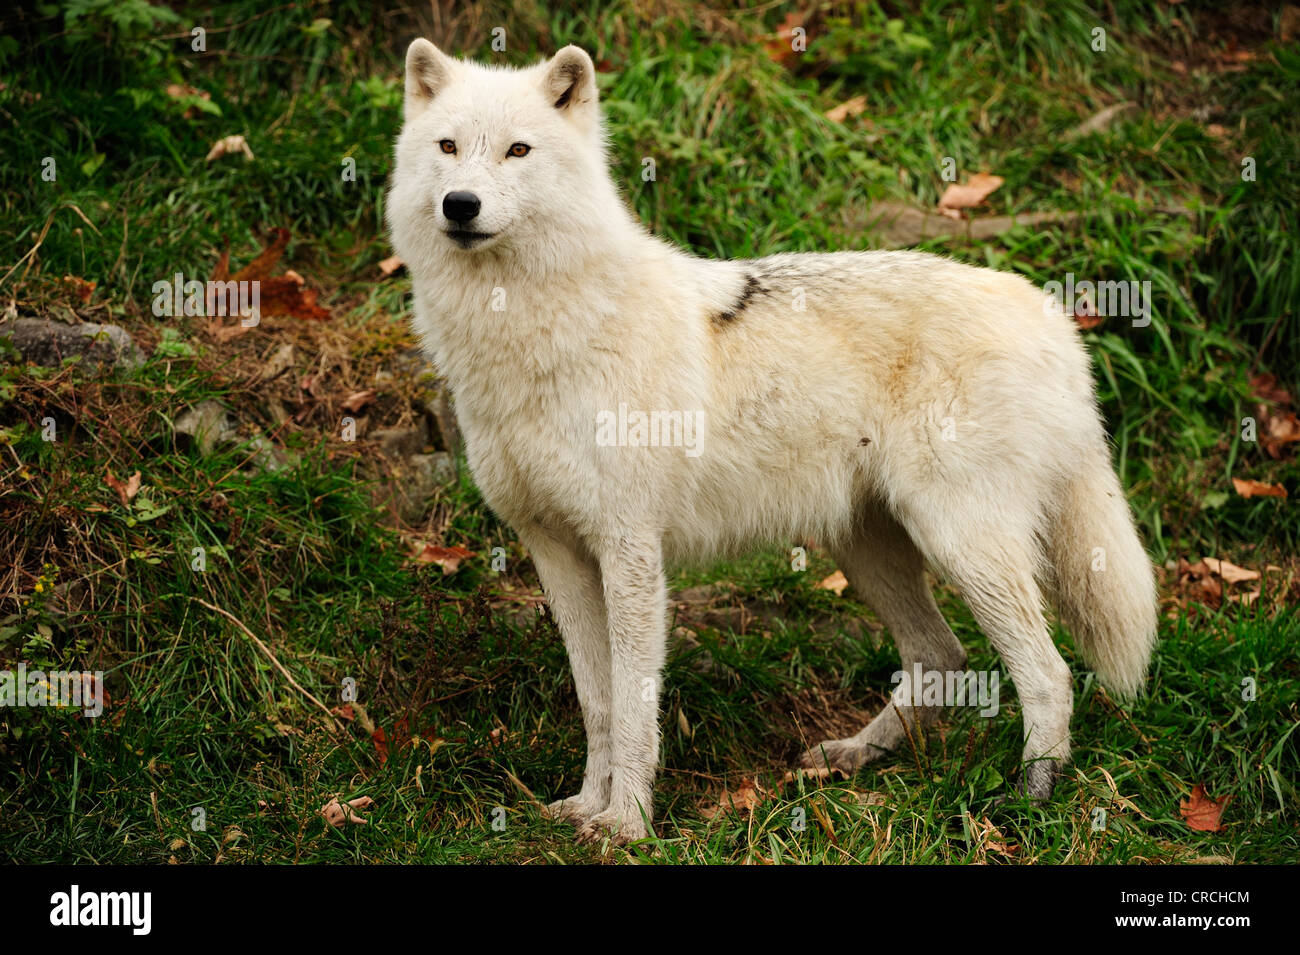 White Wolf High Resolution Stock Photography And Images Alamy